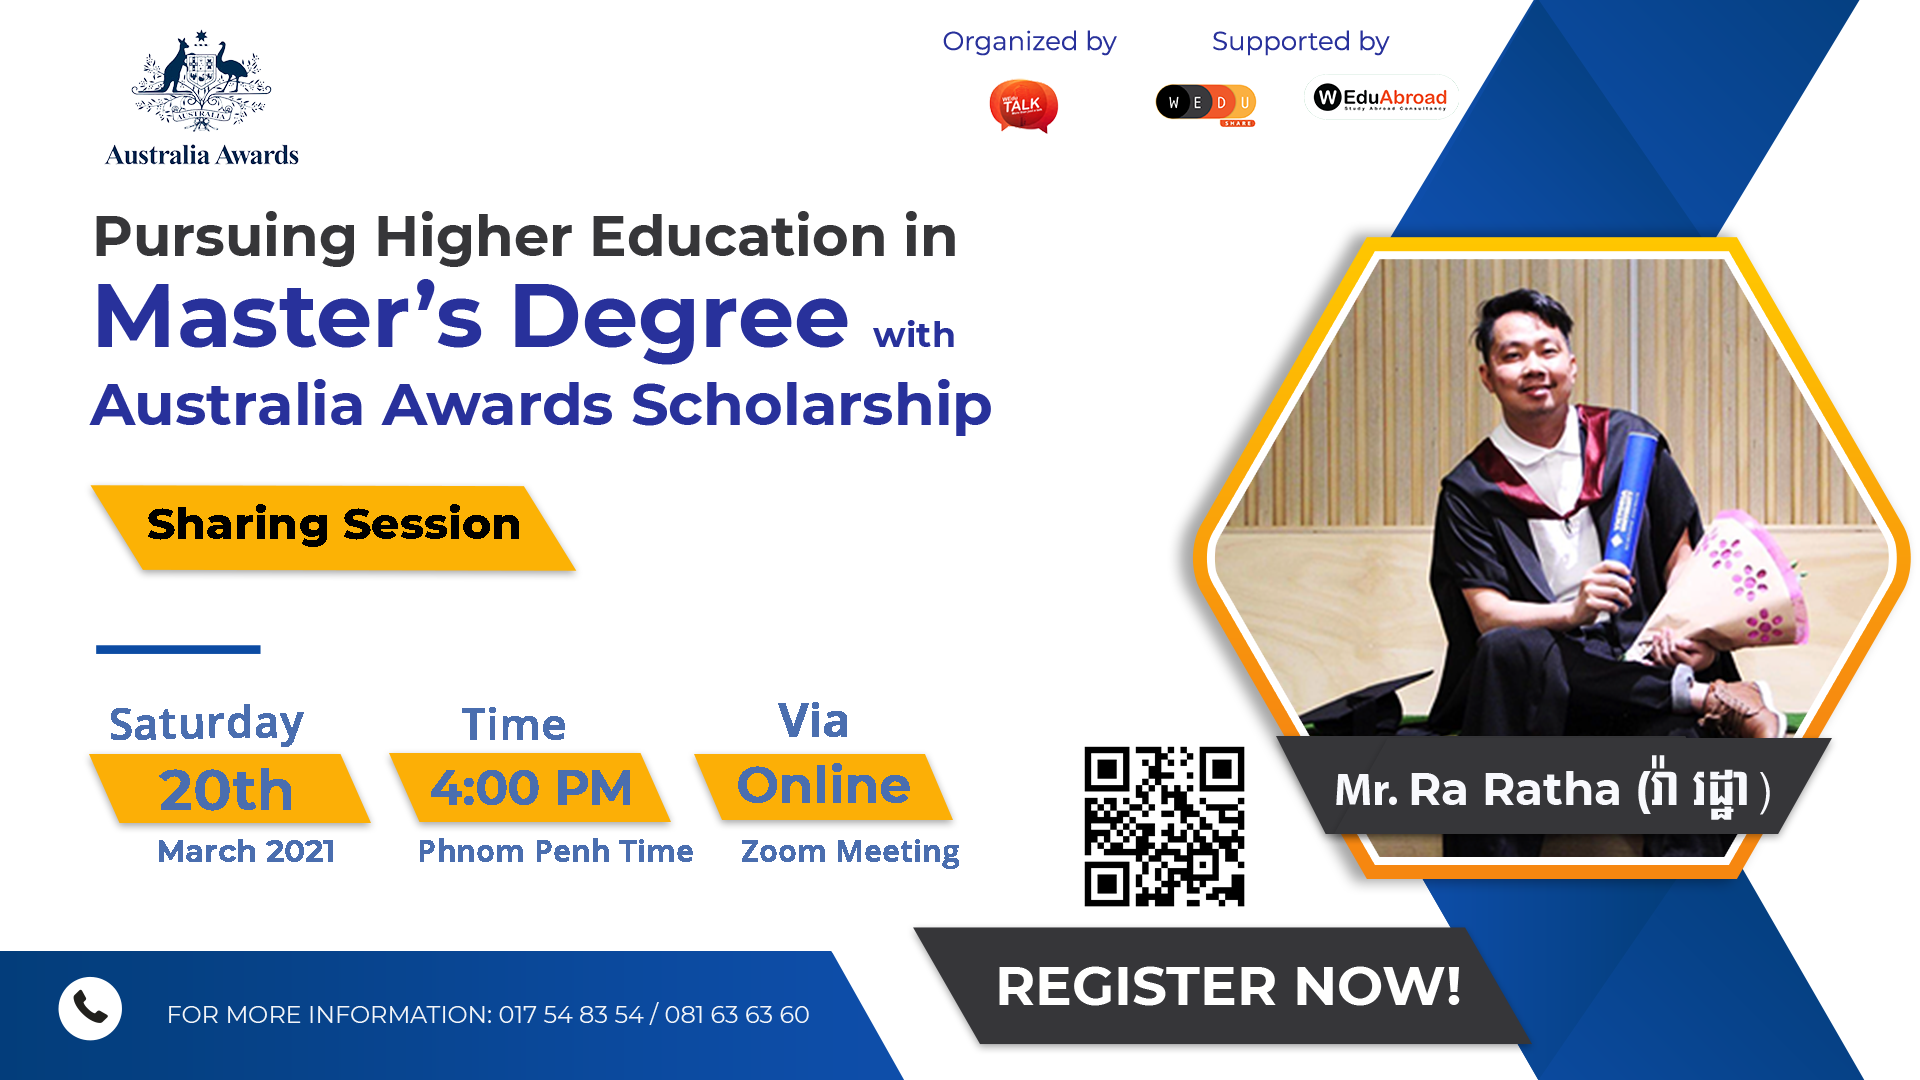 Pursuing Higher Education in Master's Degree with Australia Awards Scholarship Sharing Session